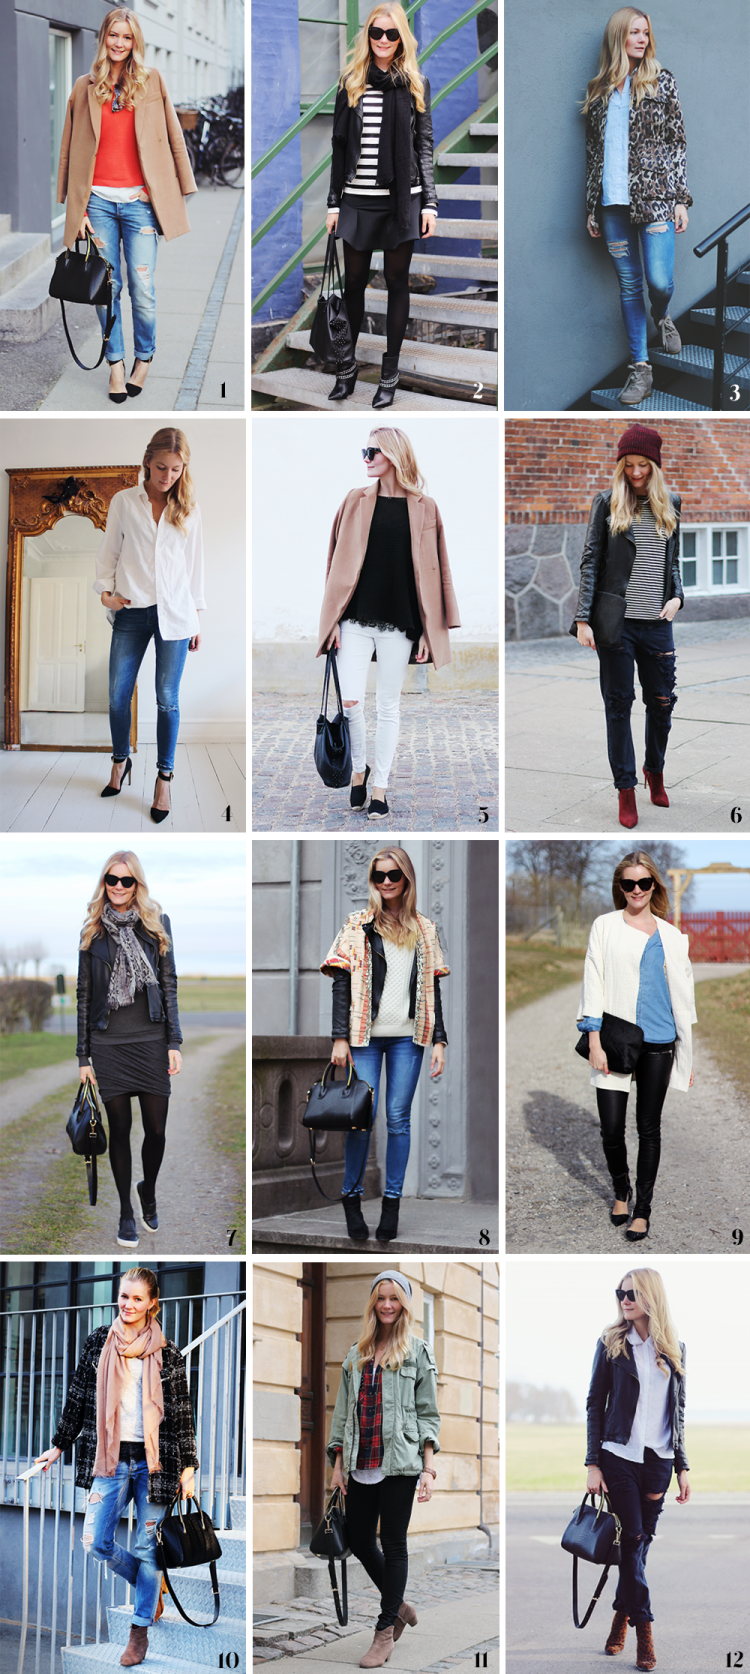 modeblog fashion blog outfit ootd styling streetstyle